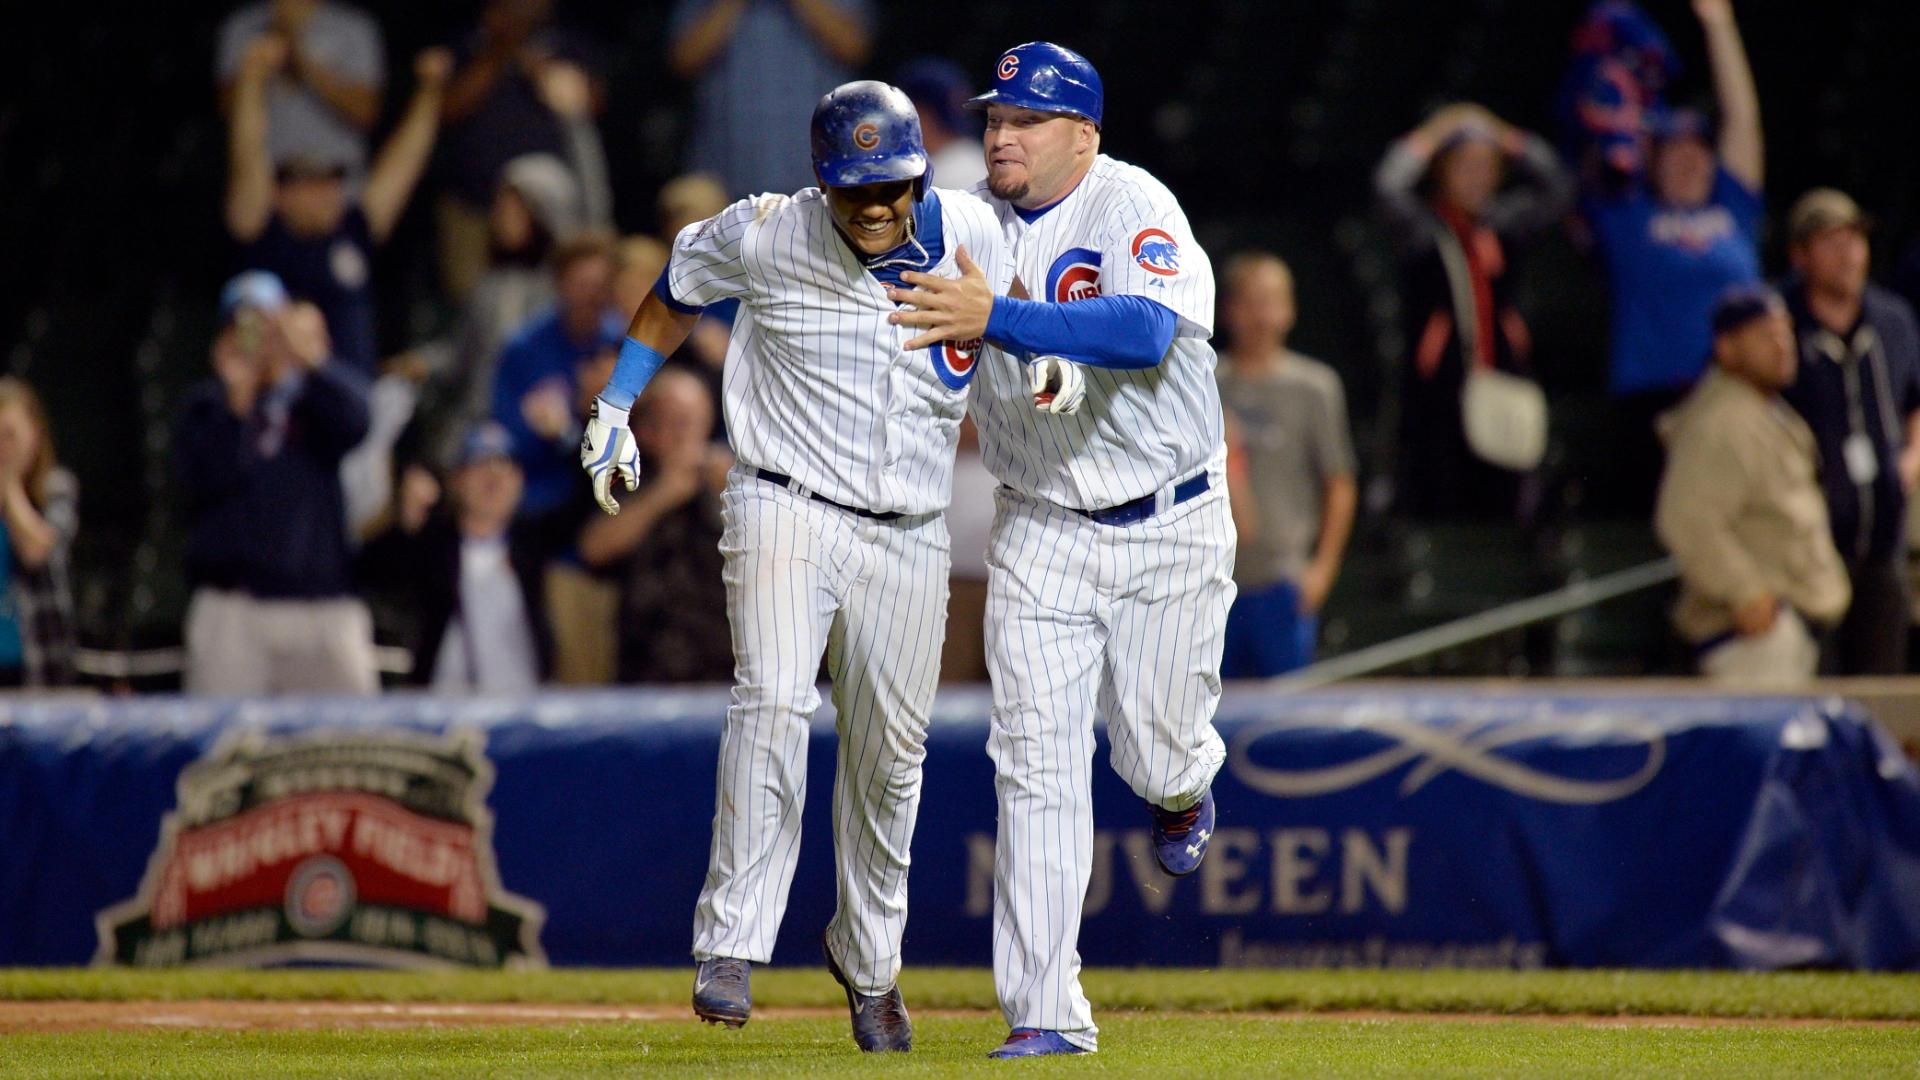 Cubs Walk Off In 16th